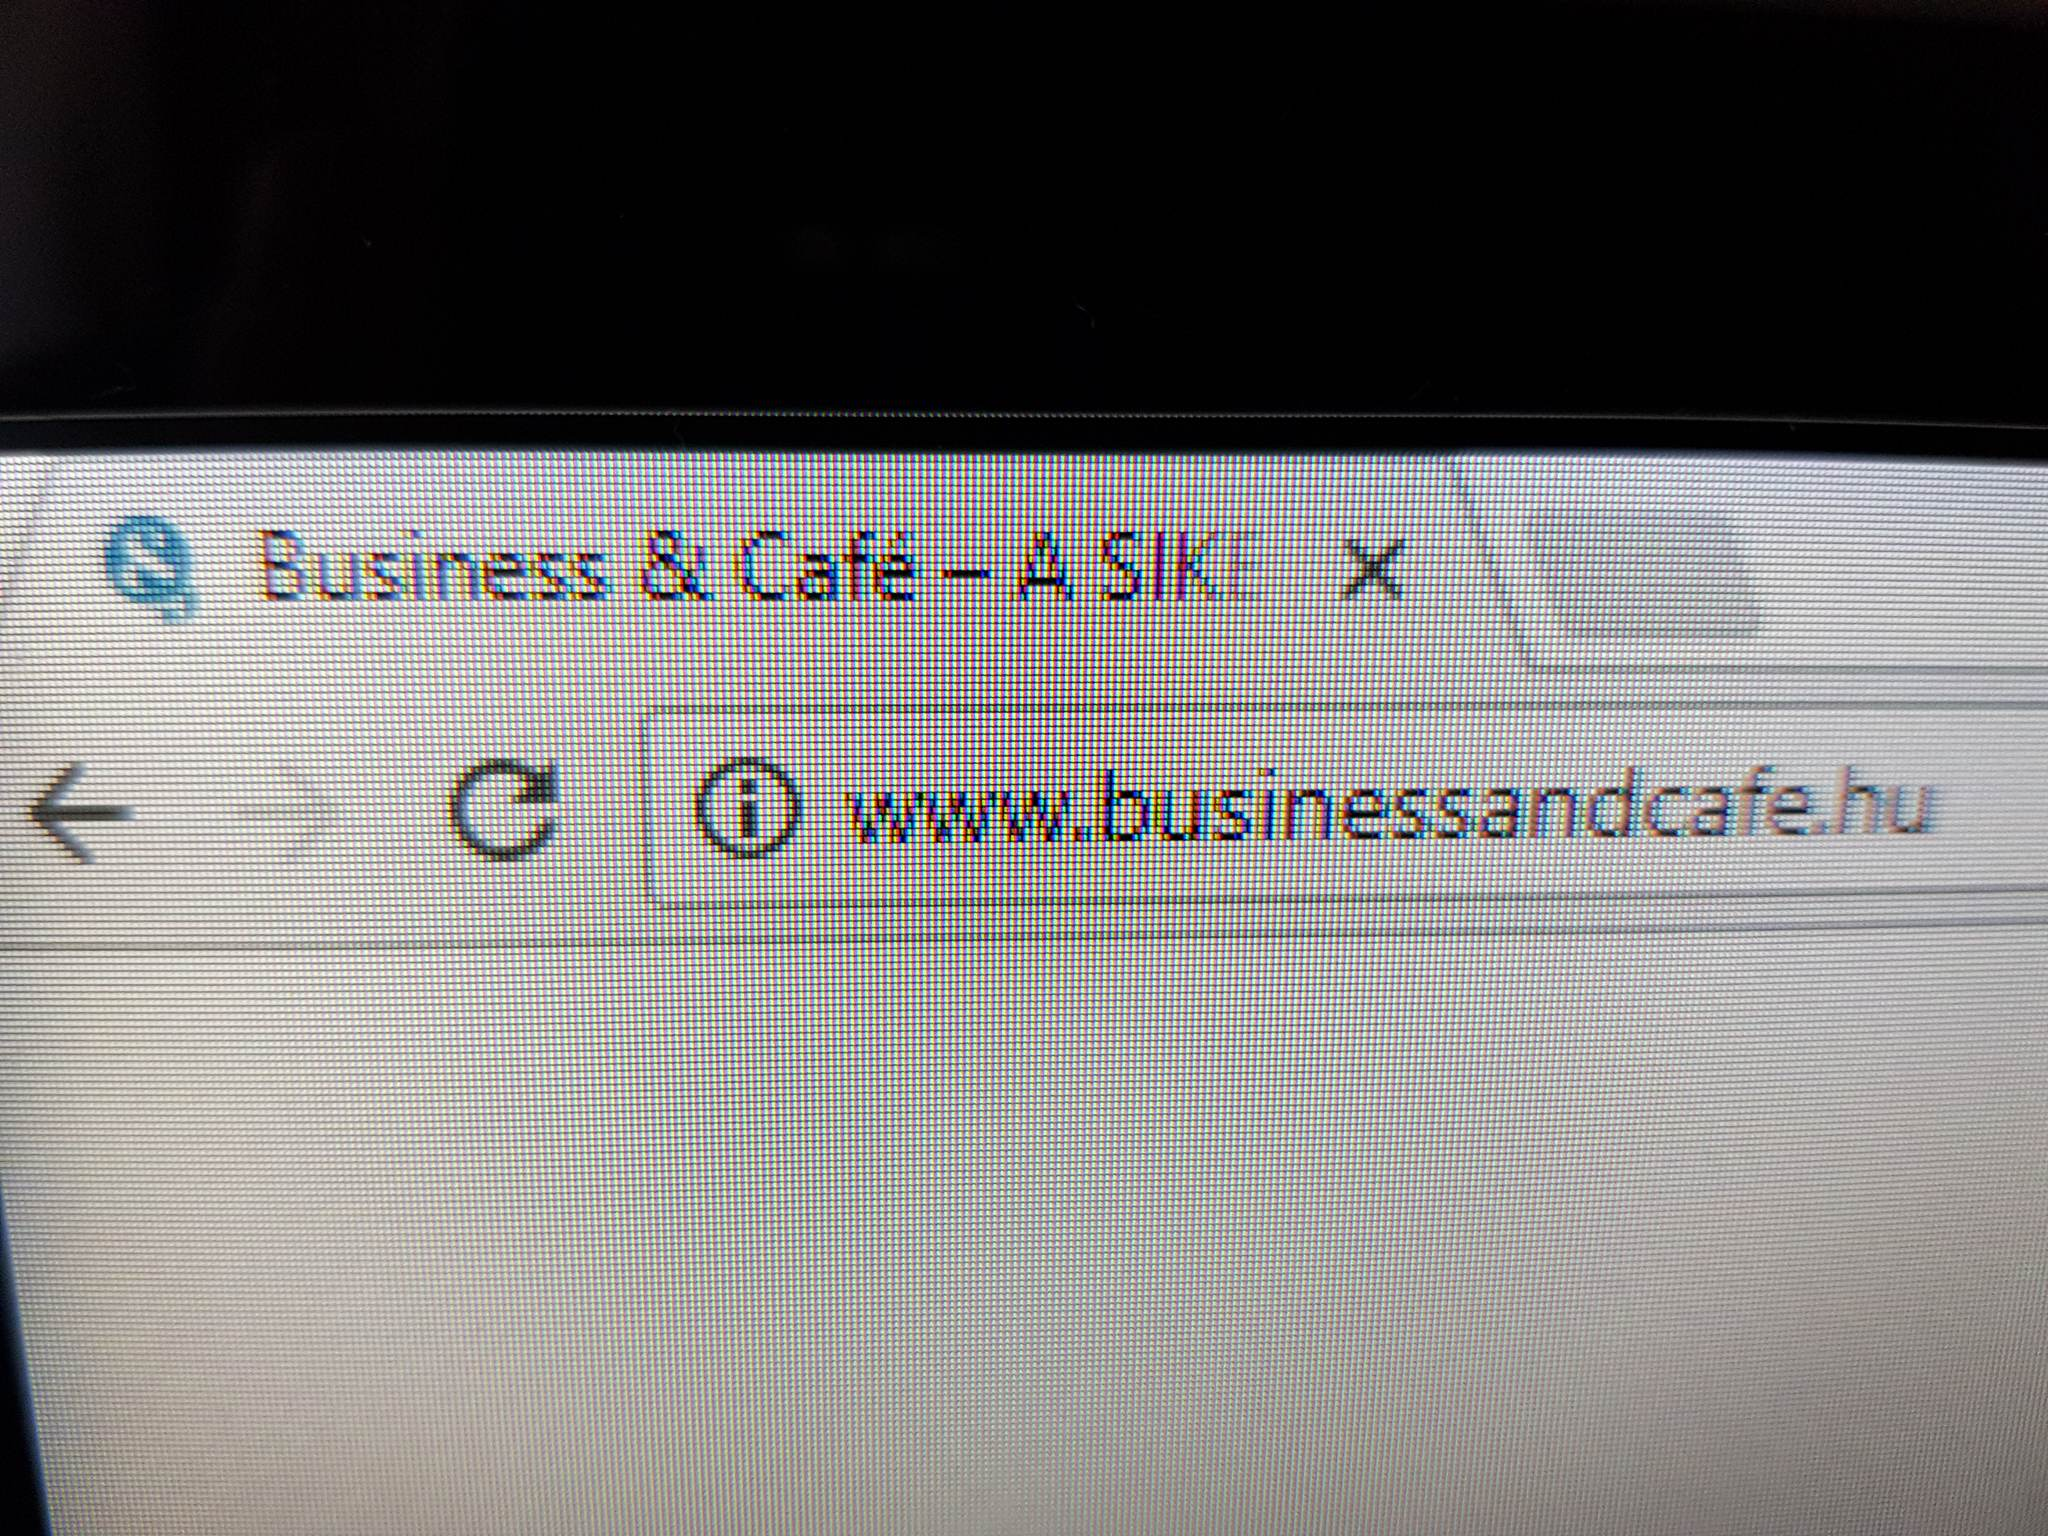 businessandcafedomain.jpg